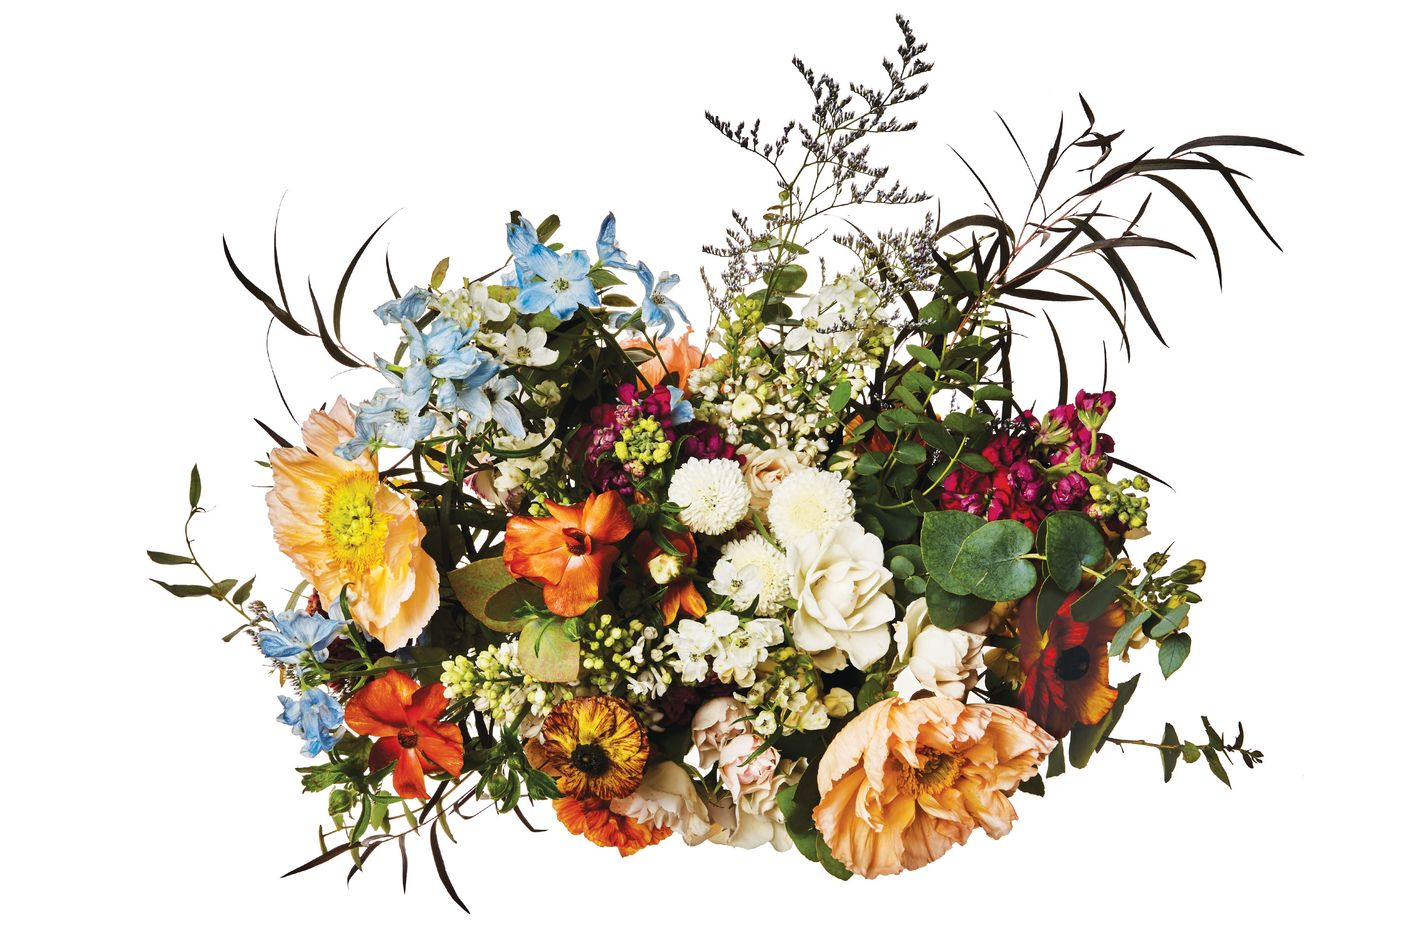 Clooney and Butterfly ranunculus, lilac, poppy, rainbow eucalyptus, delphinium, stock, and dried branches